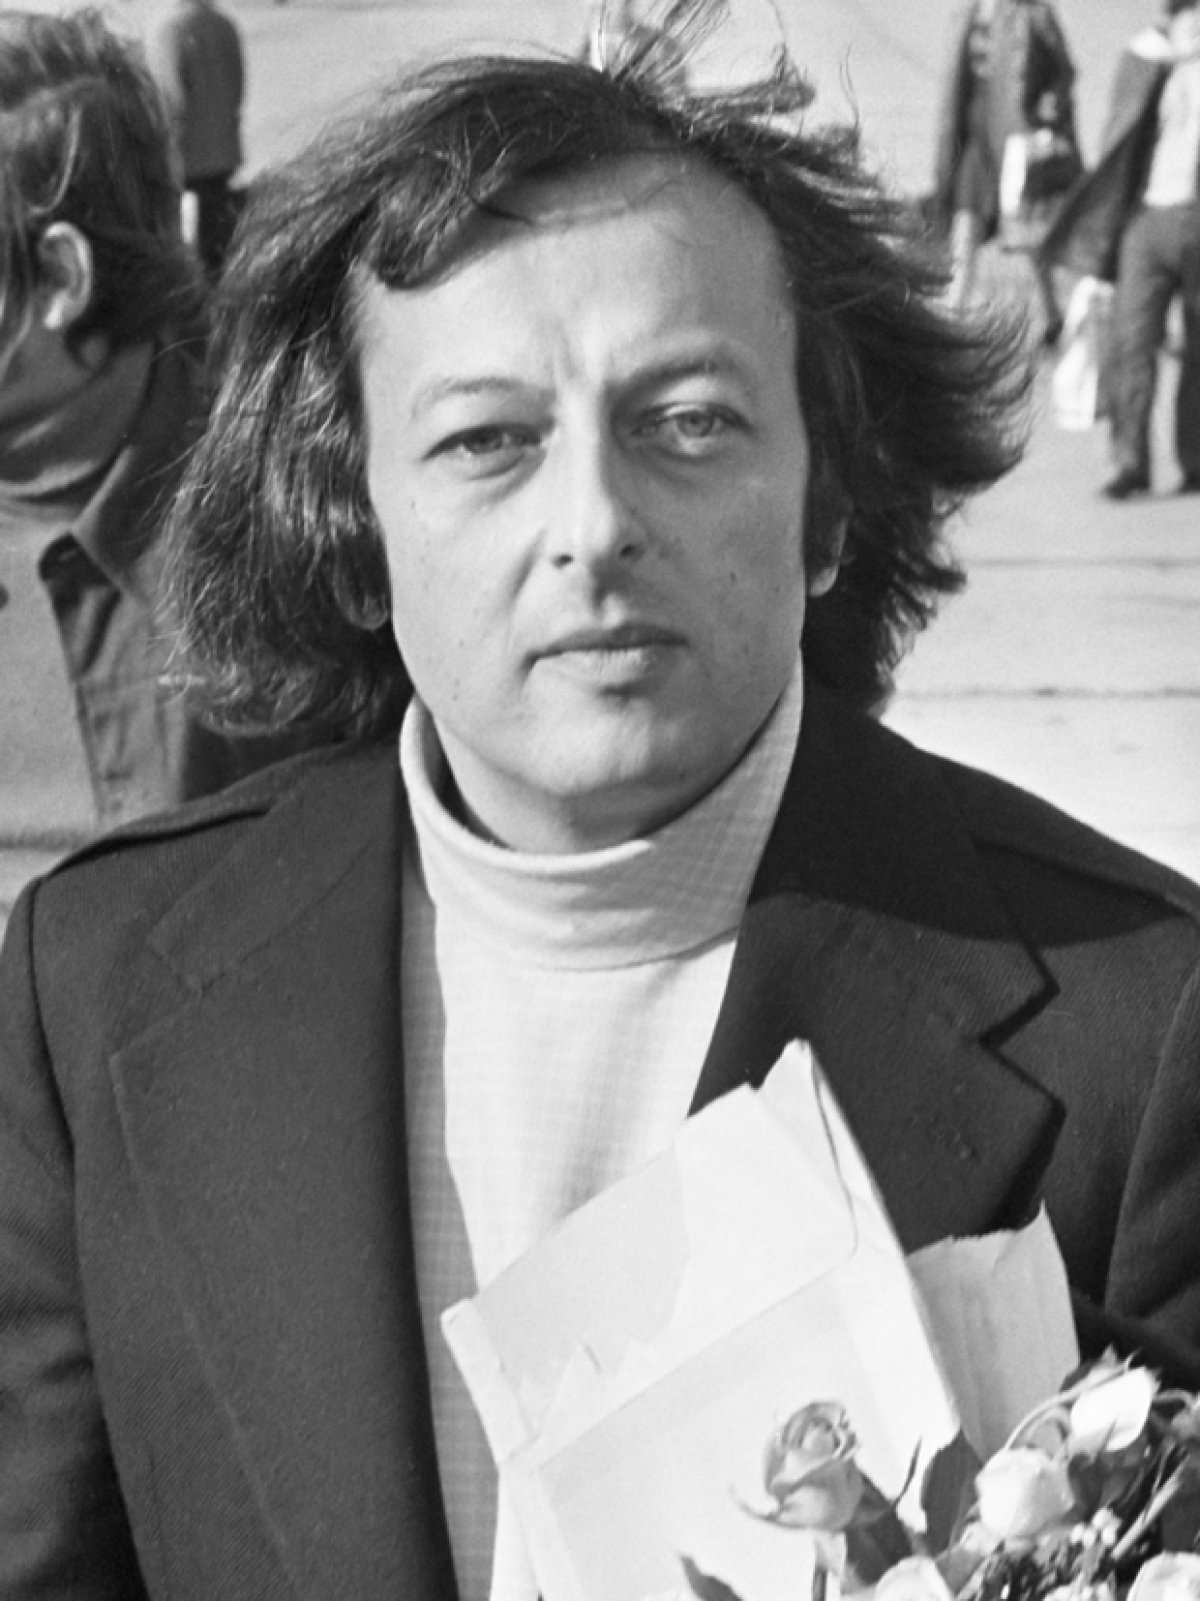 André Previn, Award-Winning Composer and Conductor, Dies at 89